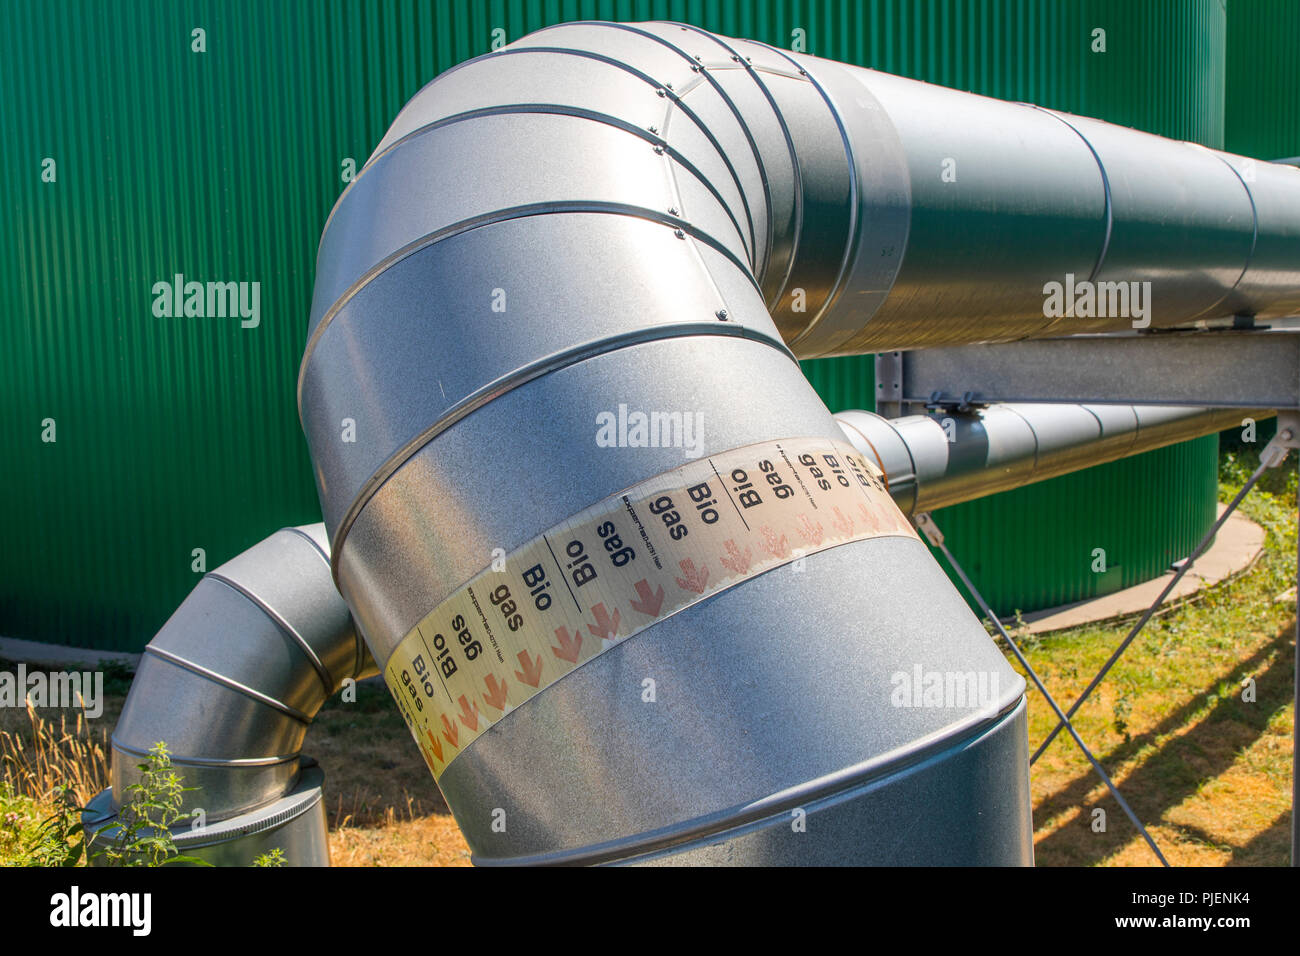 Biogas plant, pipeline for biogas in a biogas power plant